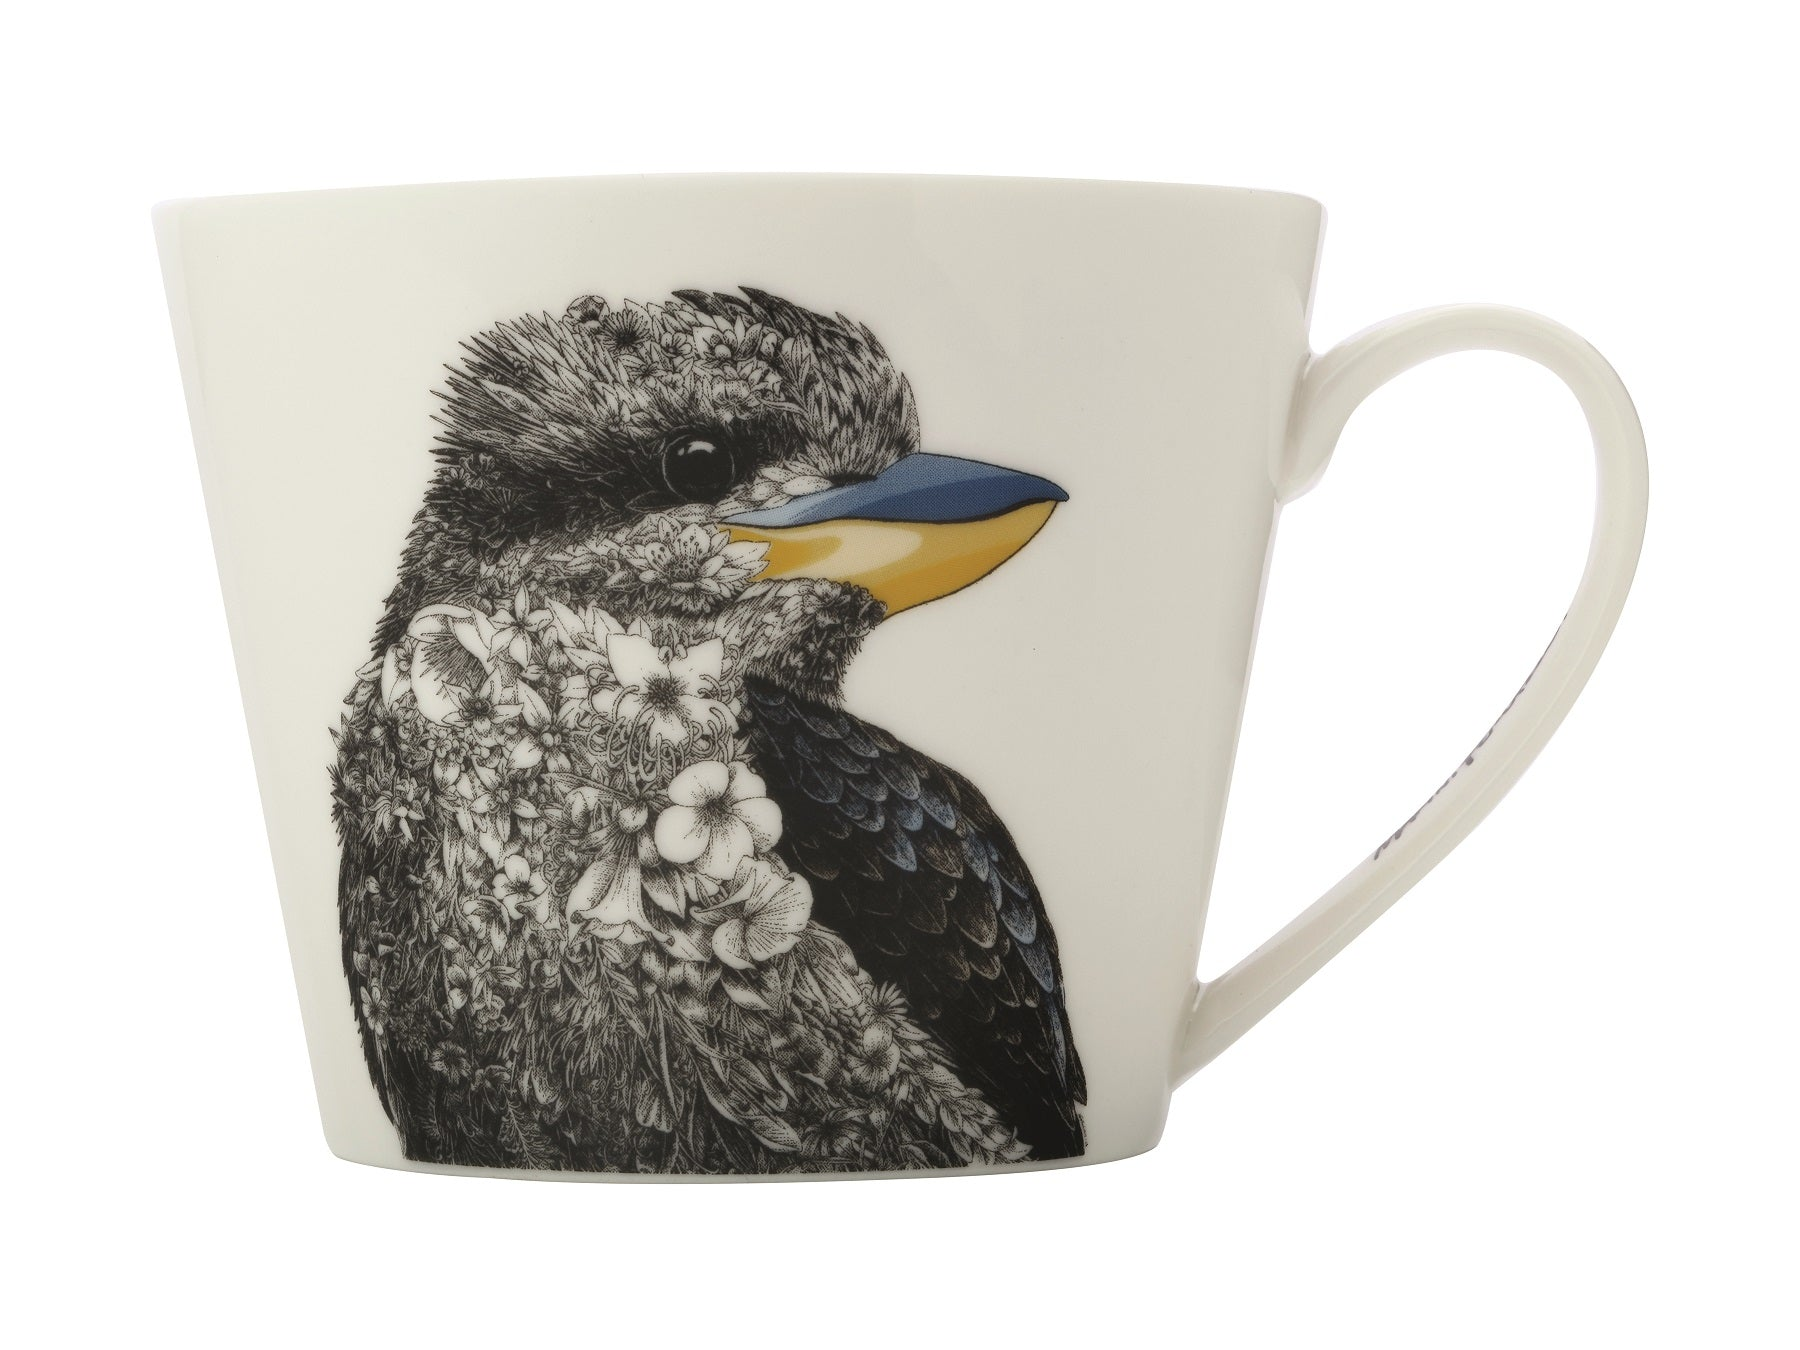 MW Marini Ferlazzo Birds Kookaburra Mug, Bottle, Tea Towel Set